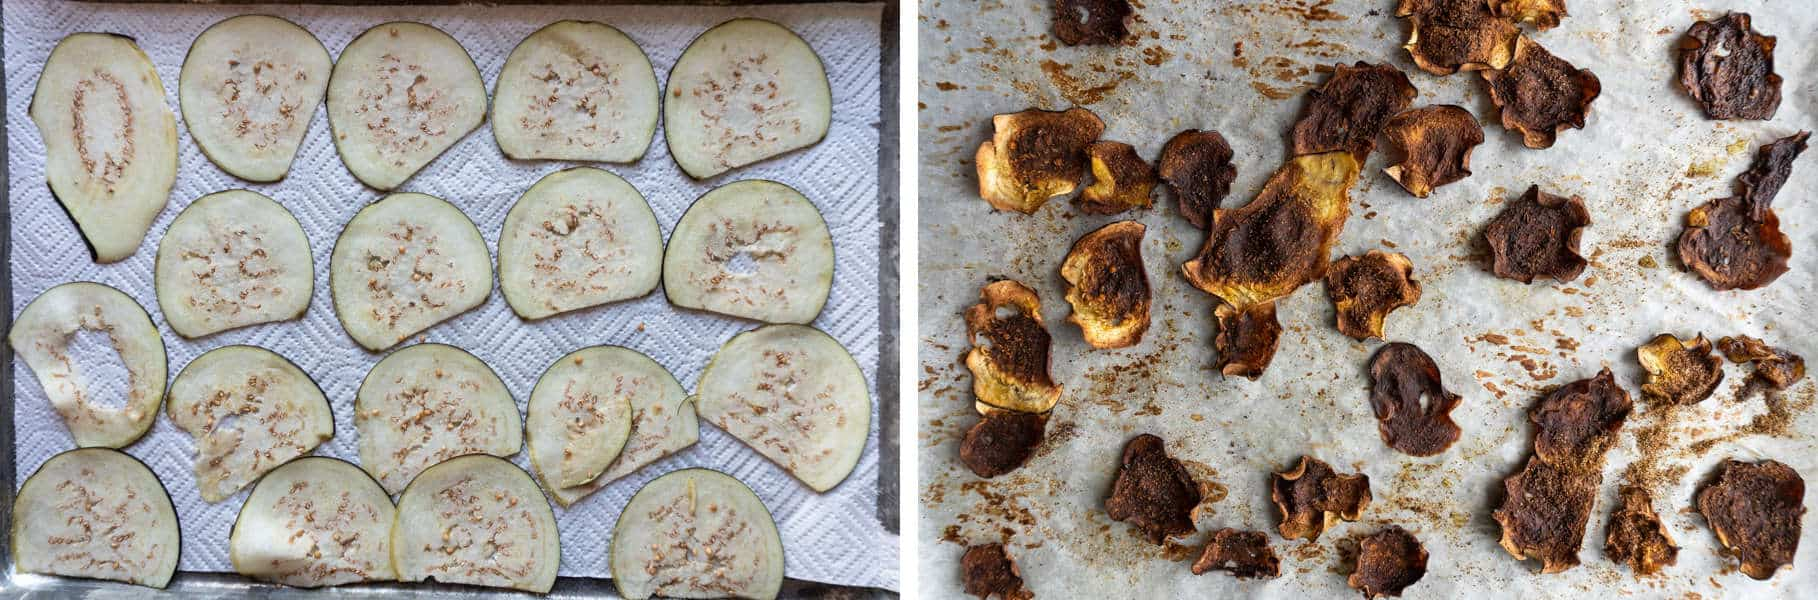 Eggplants before and after baking